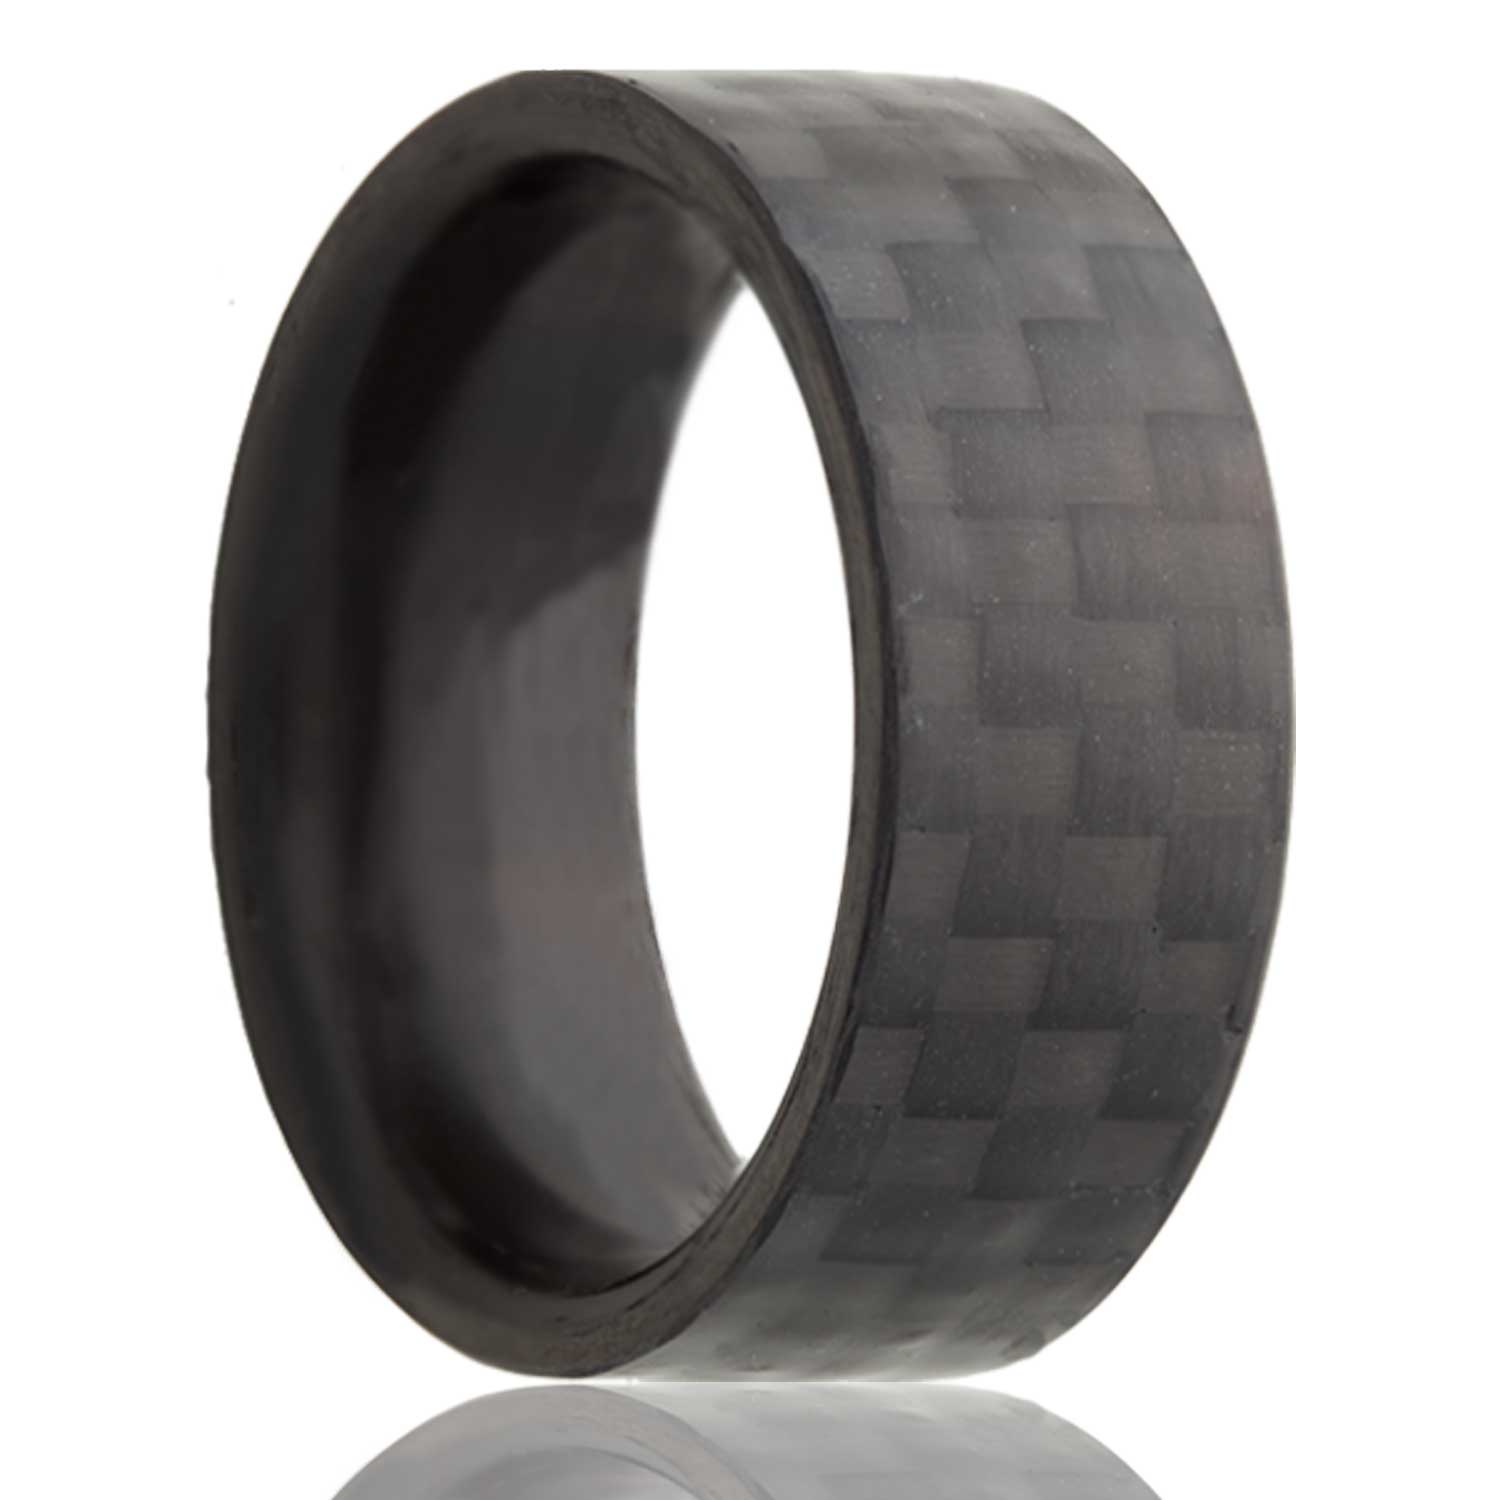 bands him ring decor ideas fiber rings sleek wood made carbon custom modern wedding for